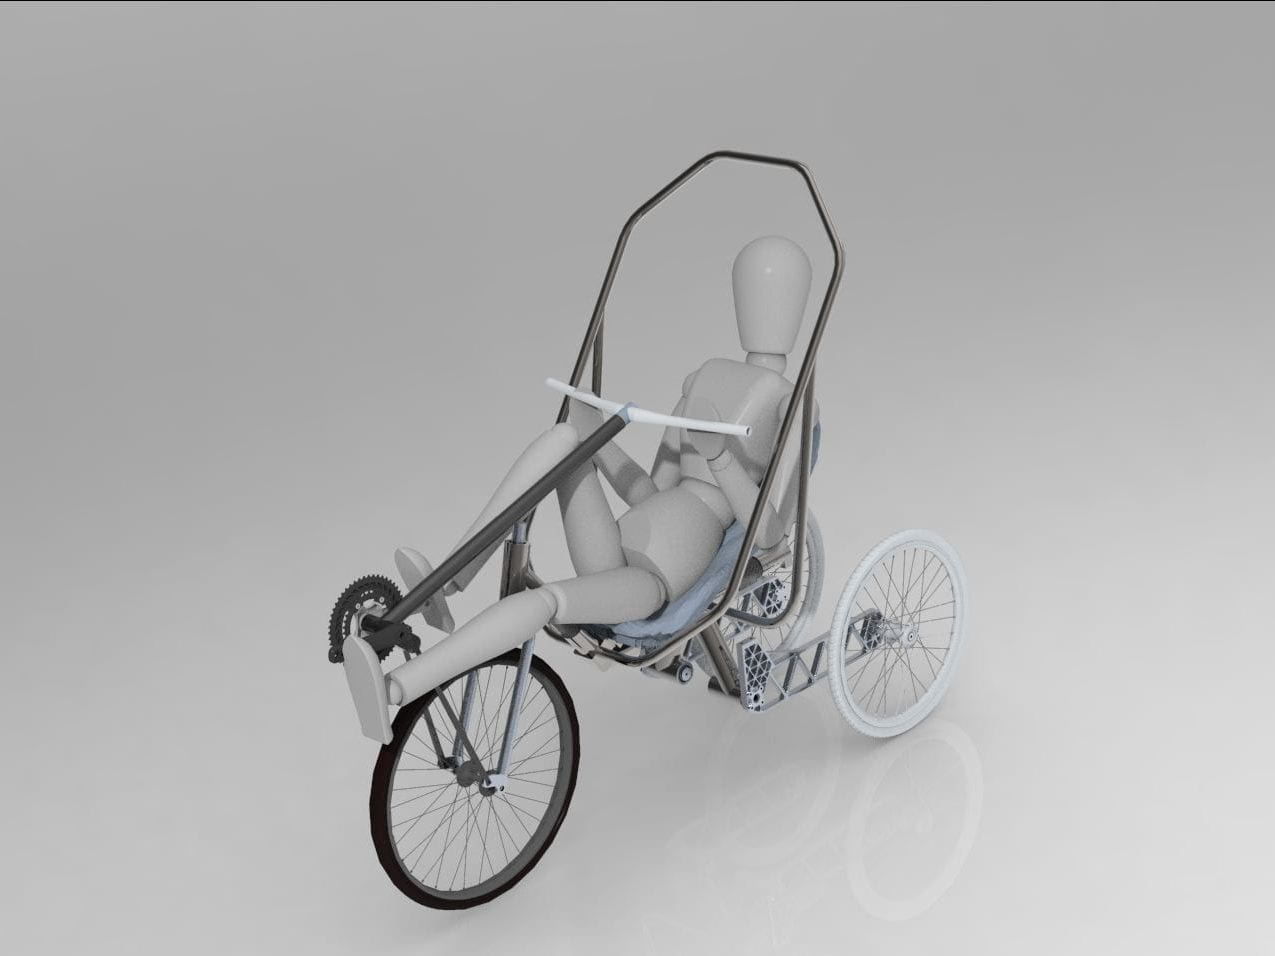 Tilting, narrow-track, recumbent tricycle with variable